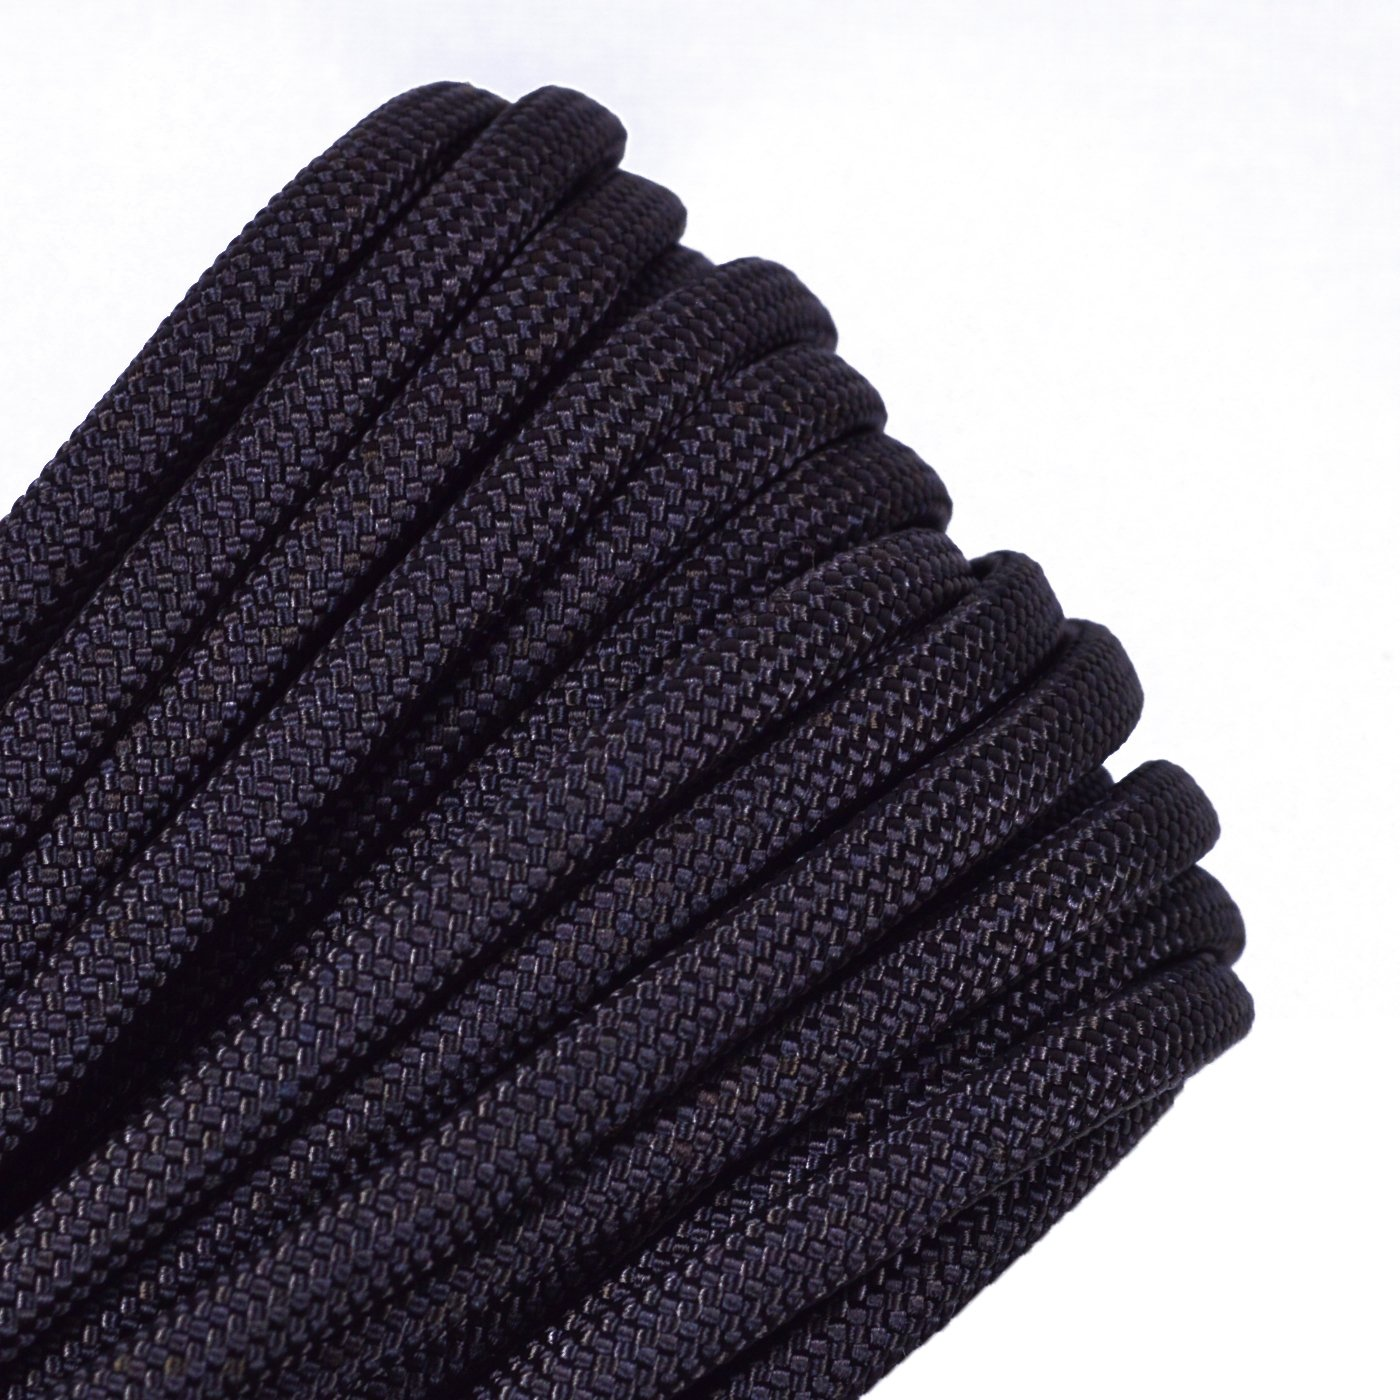 Solid Colors Paracord - Type III Parachute Cord - Acid Brown - 100 Feet by BoredParacord (Image #1)